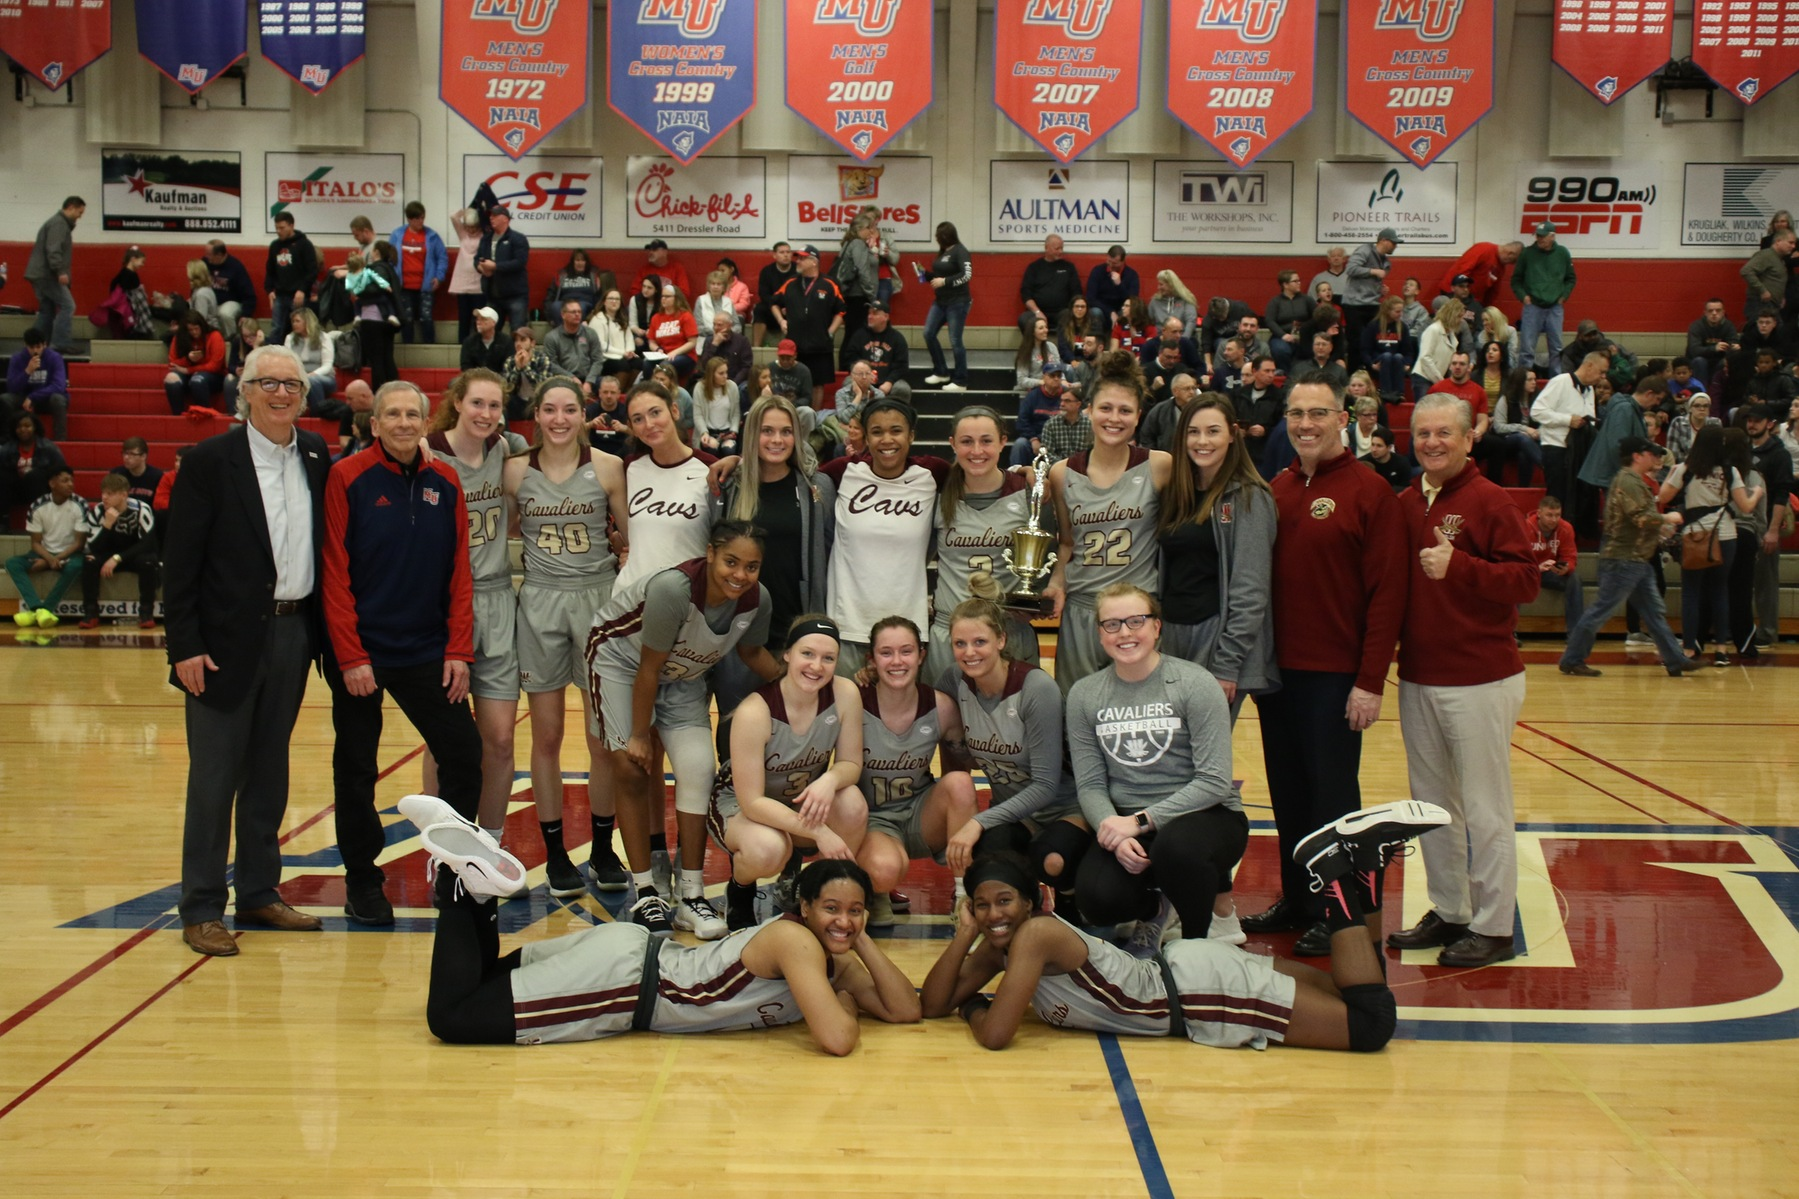 Cavs Capture Mayors' Cup, 67-57